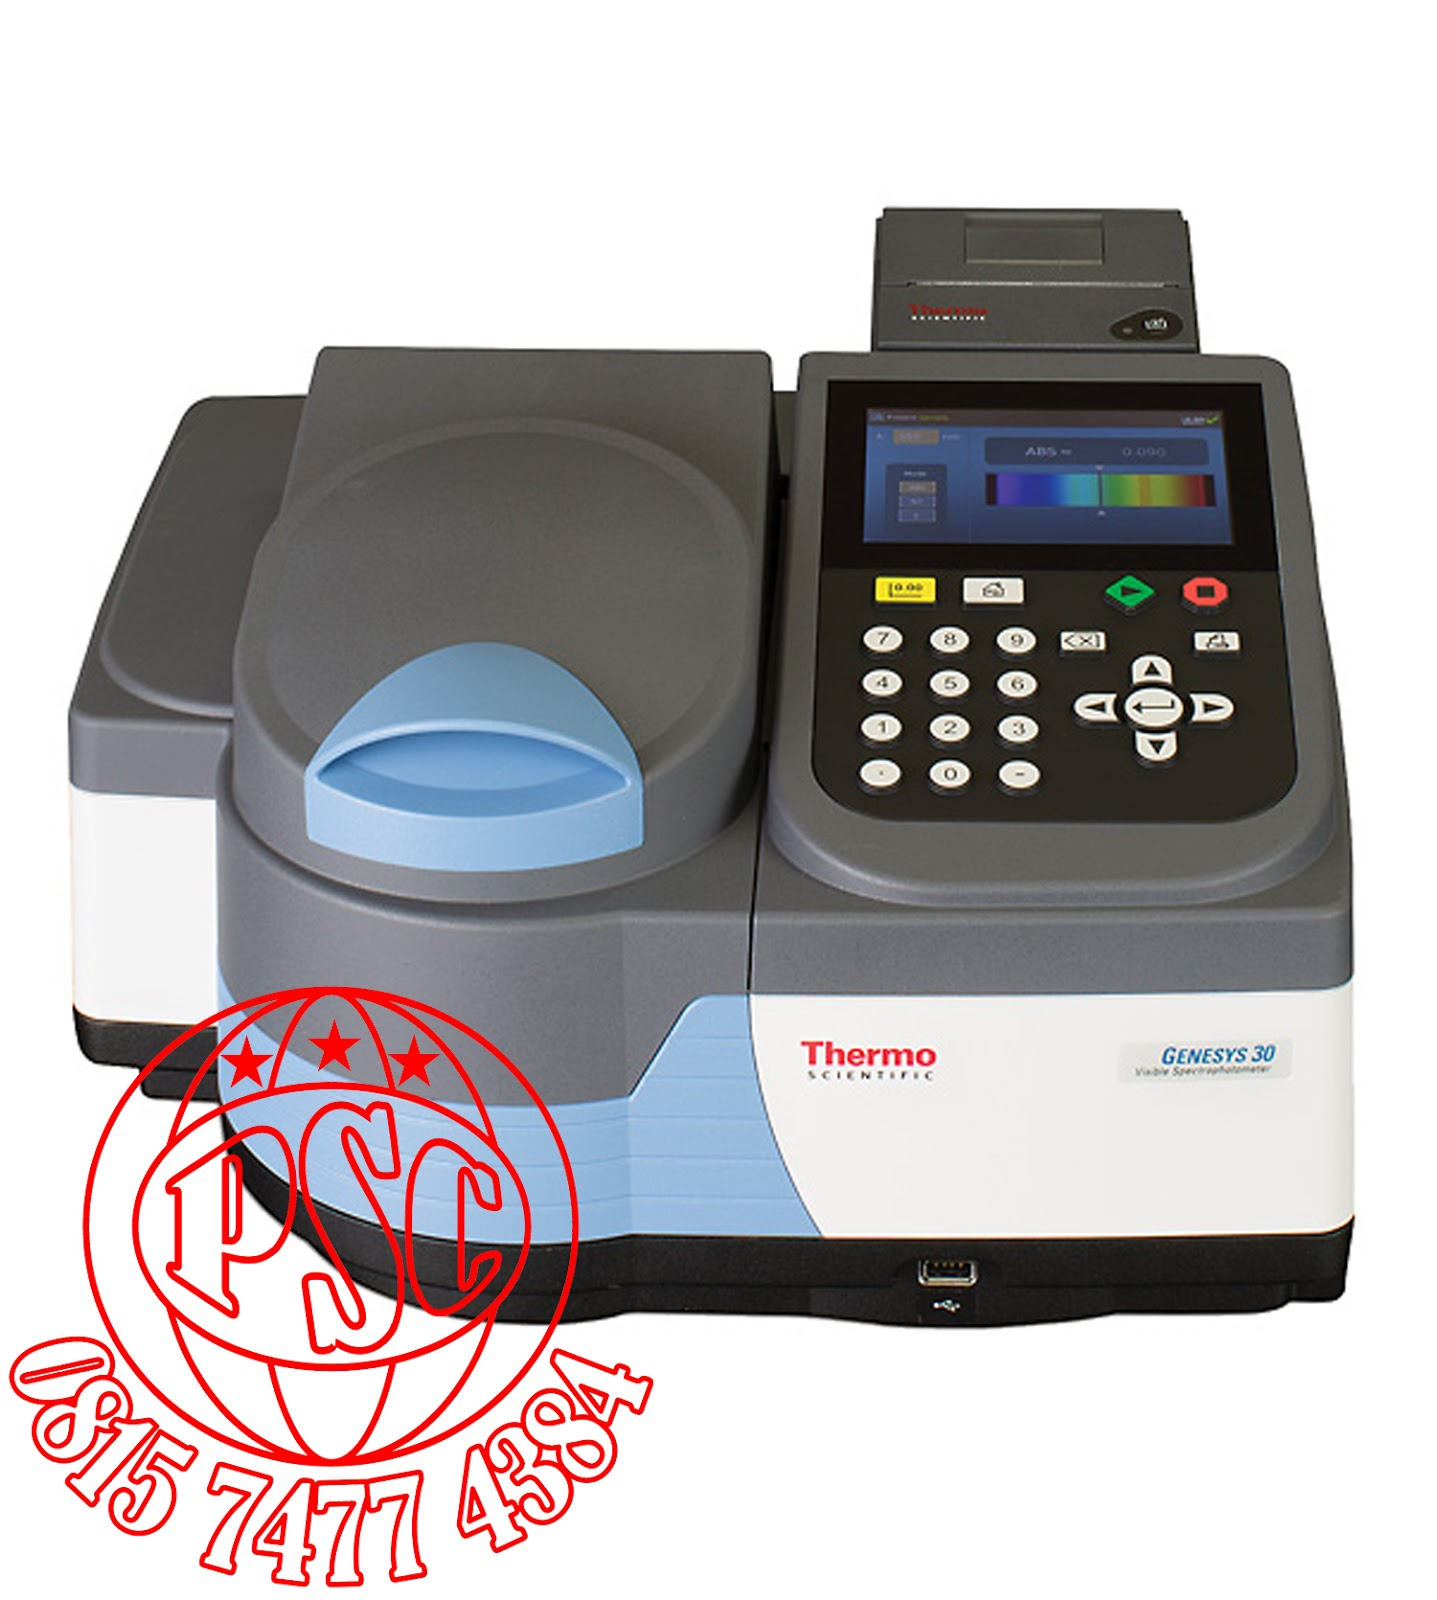 genesys 10s vis spectrophotometer manual